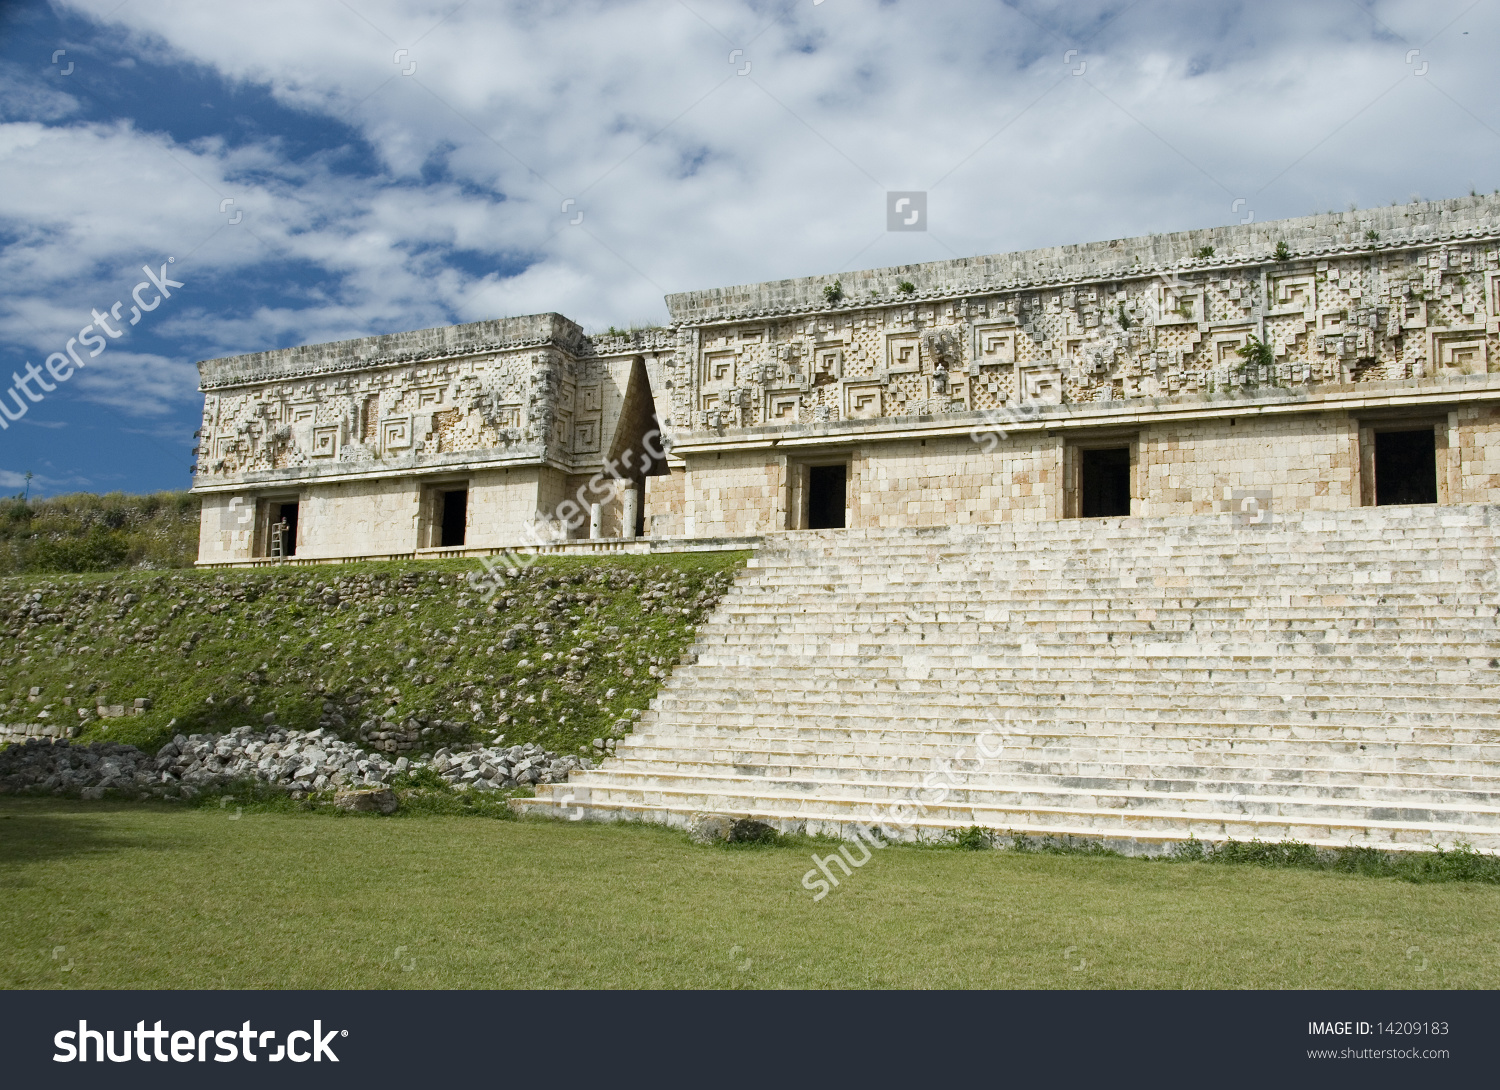 The Palace Of The Governor, Puuc Architectural Style At Uxmal Maya.